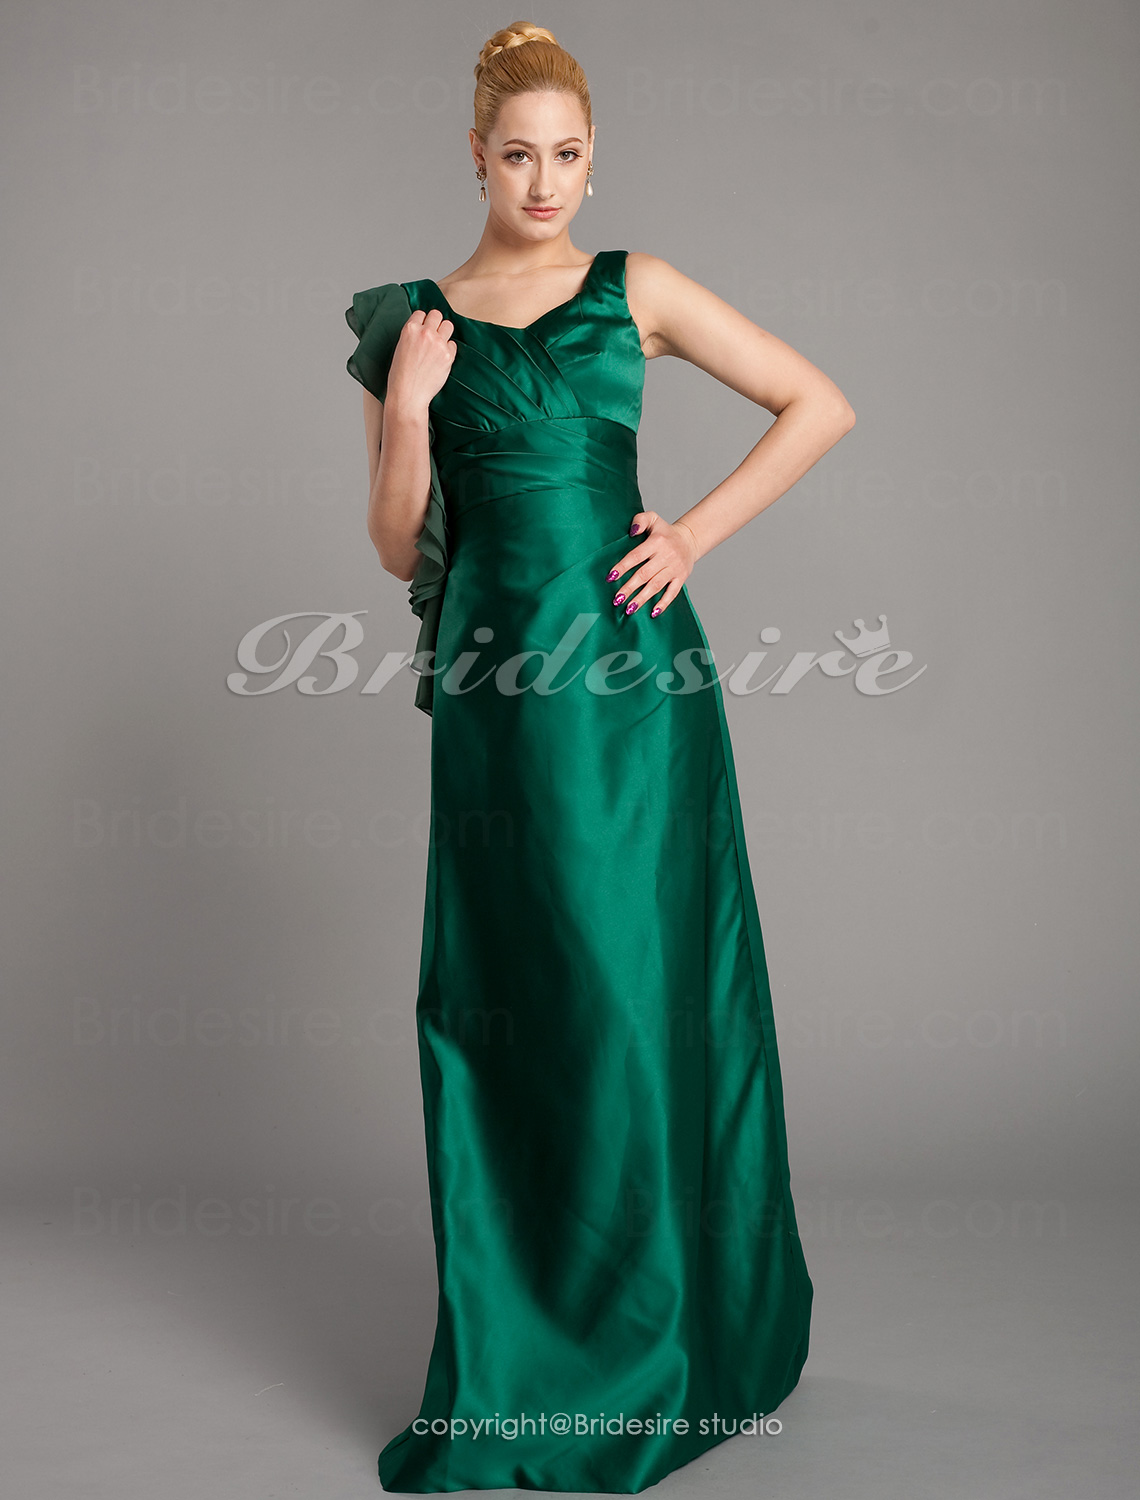 Sheath/ Column Satin Chiffon Floor-length V-neck Bridesmaid Dres